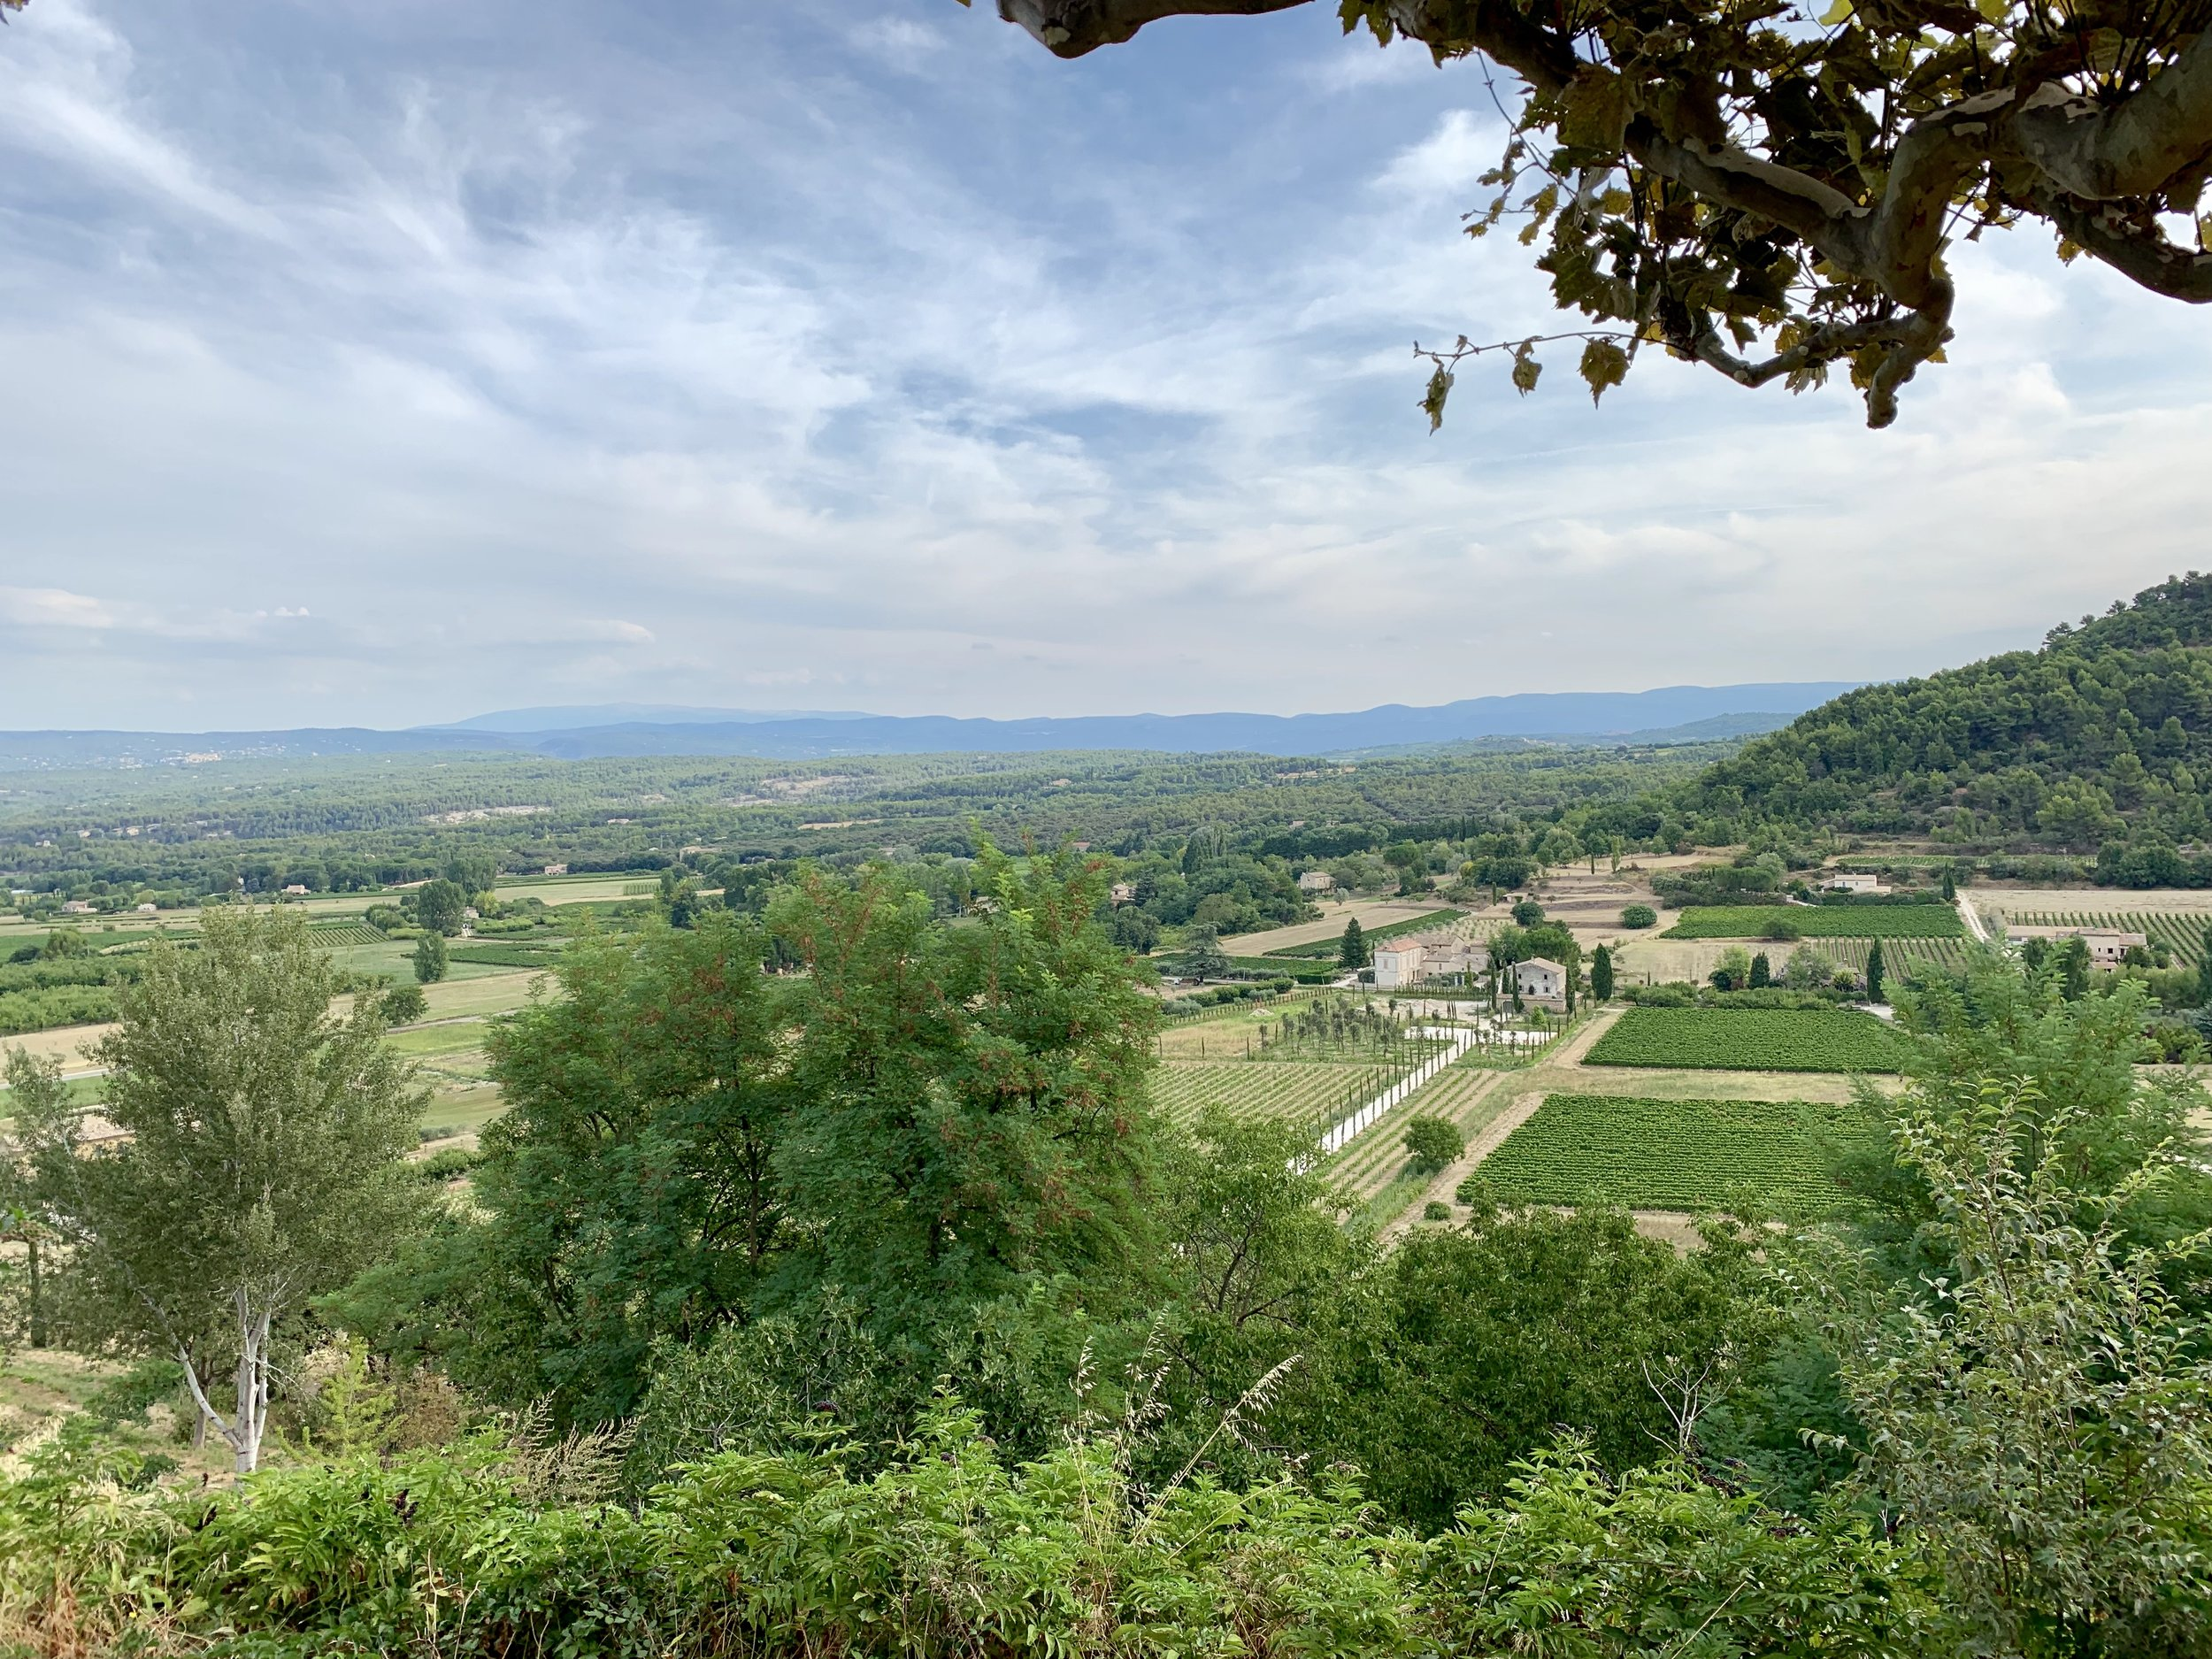 A view over Gordes, France, in the Luberon region. August 22, 2019.